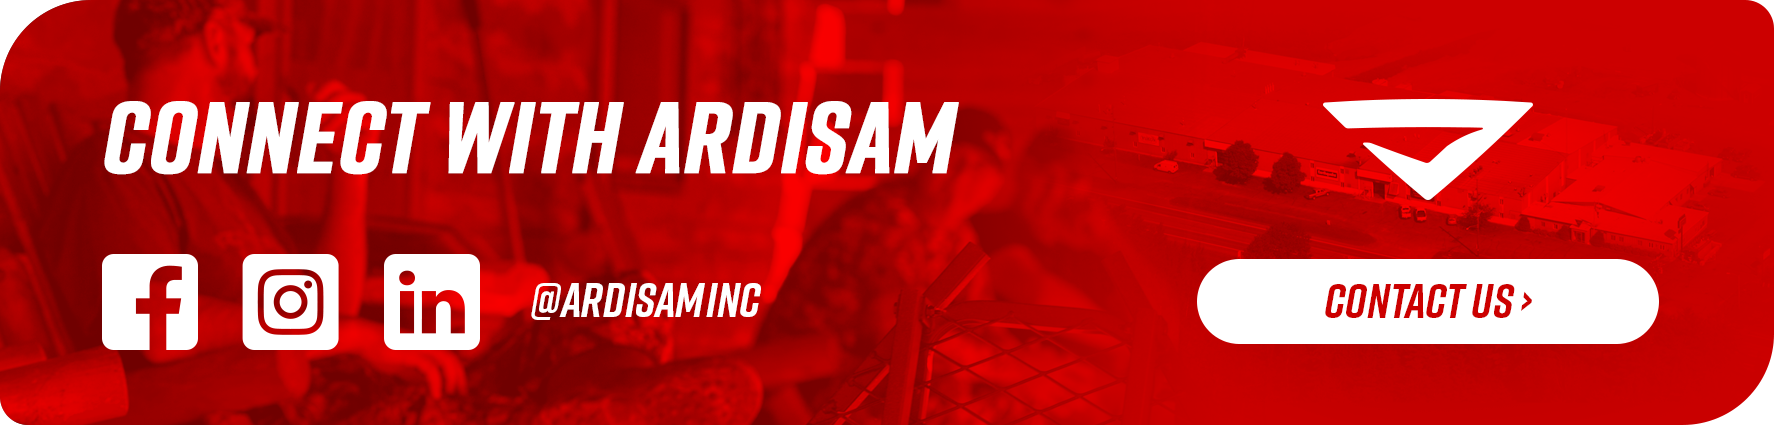 Connect with Ardisam